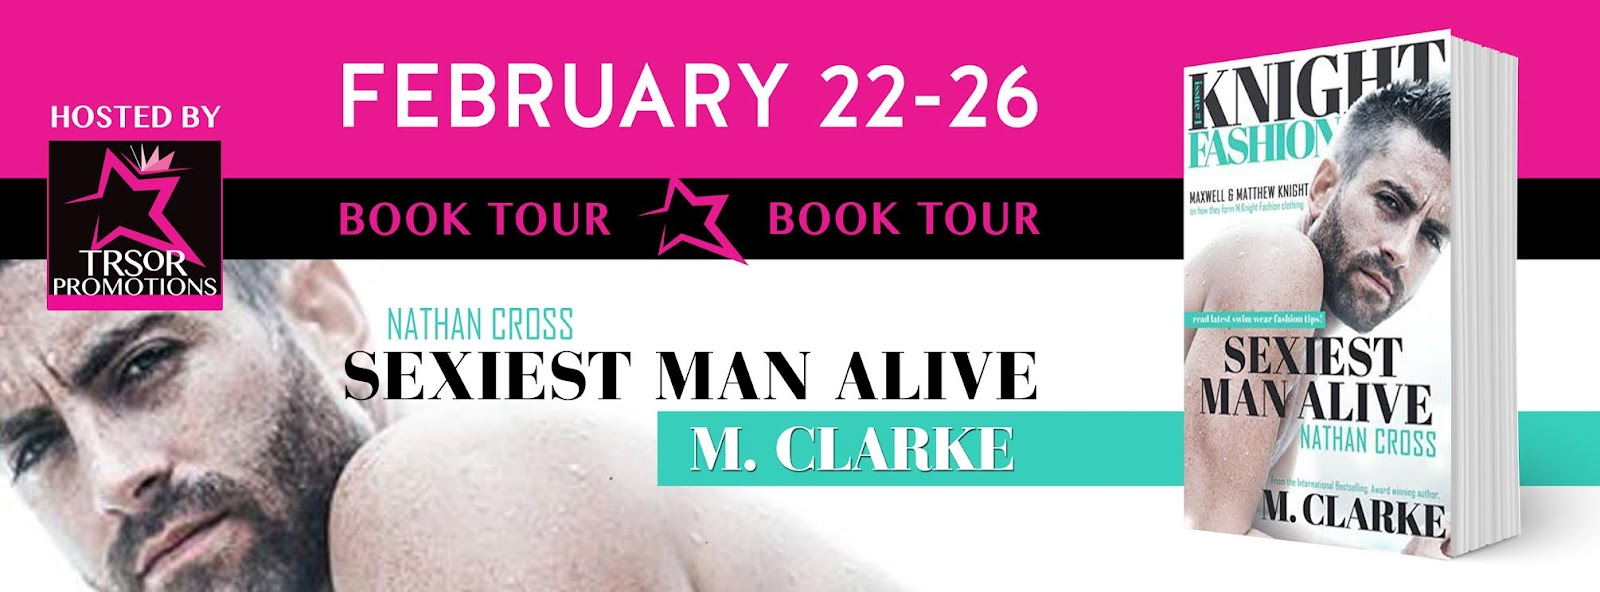 sexiest man alive book tour.jpg